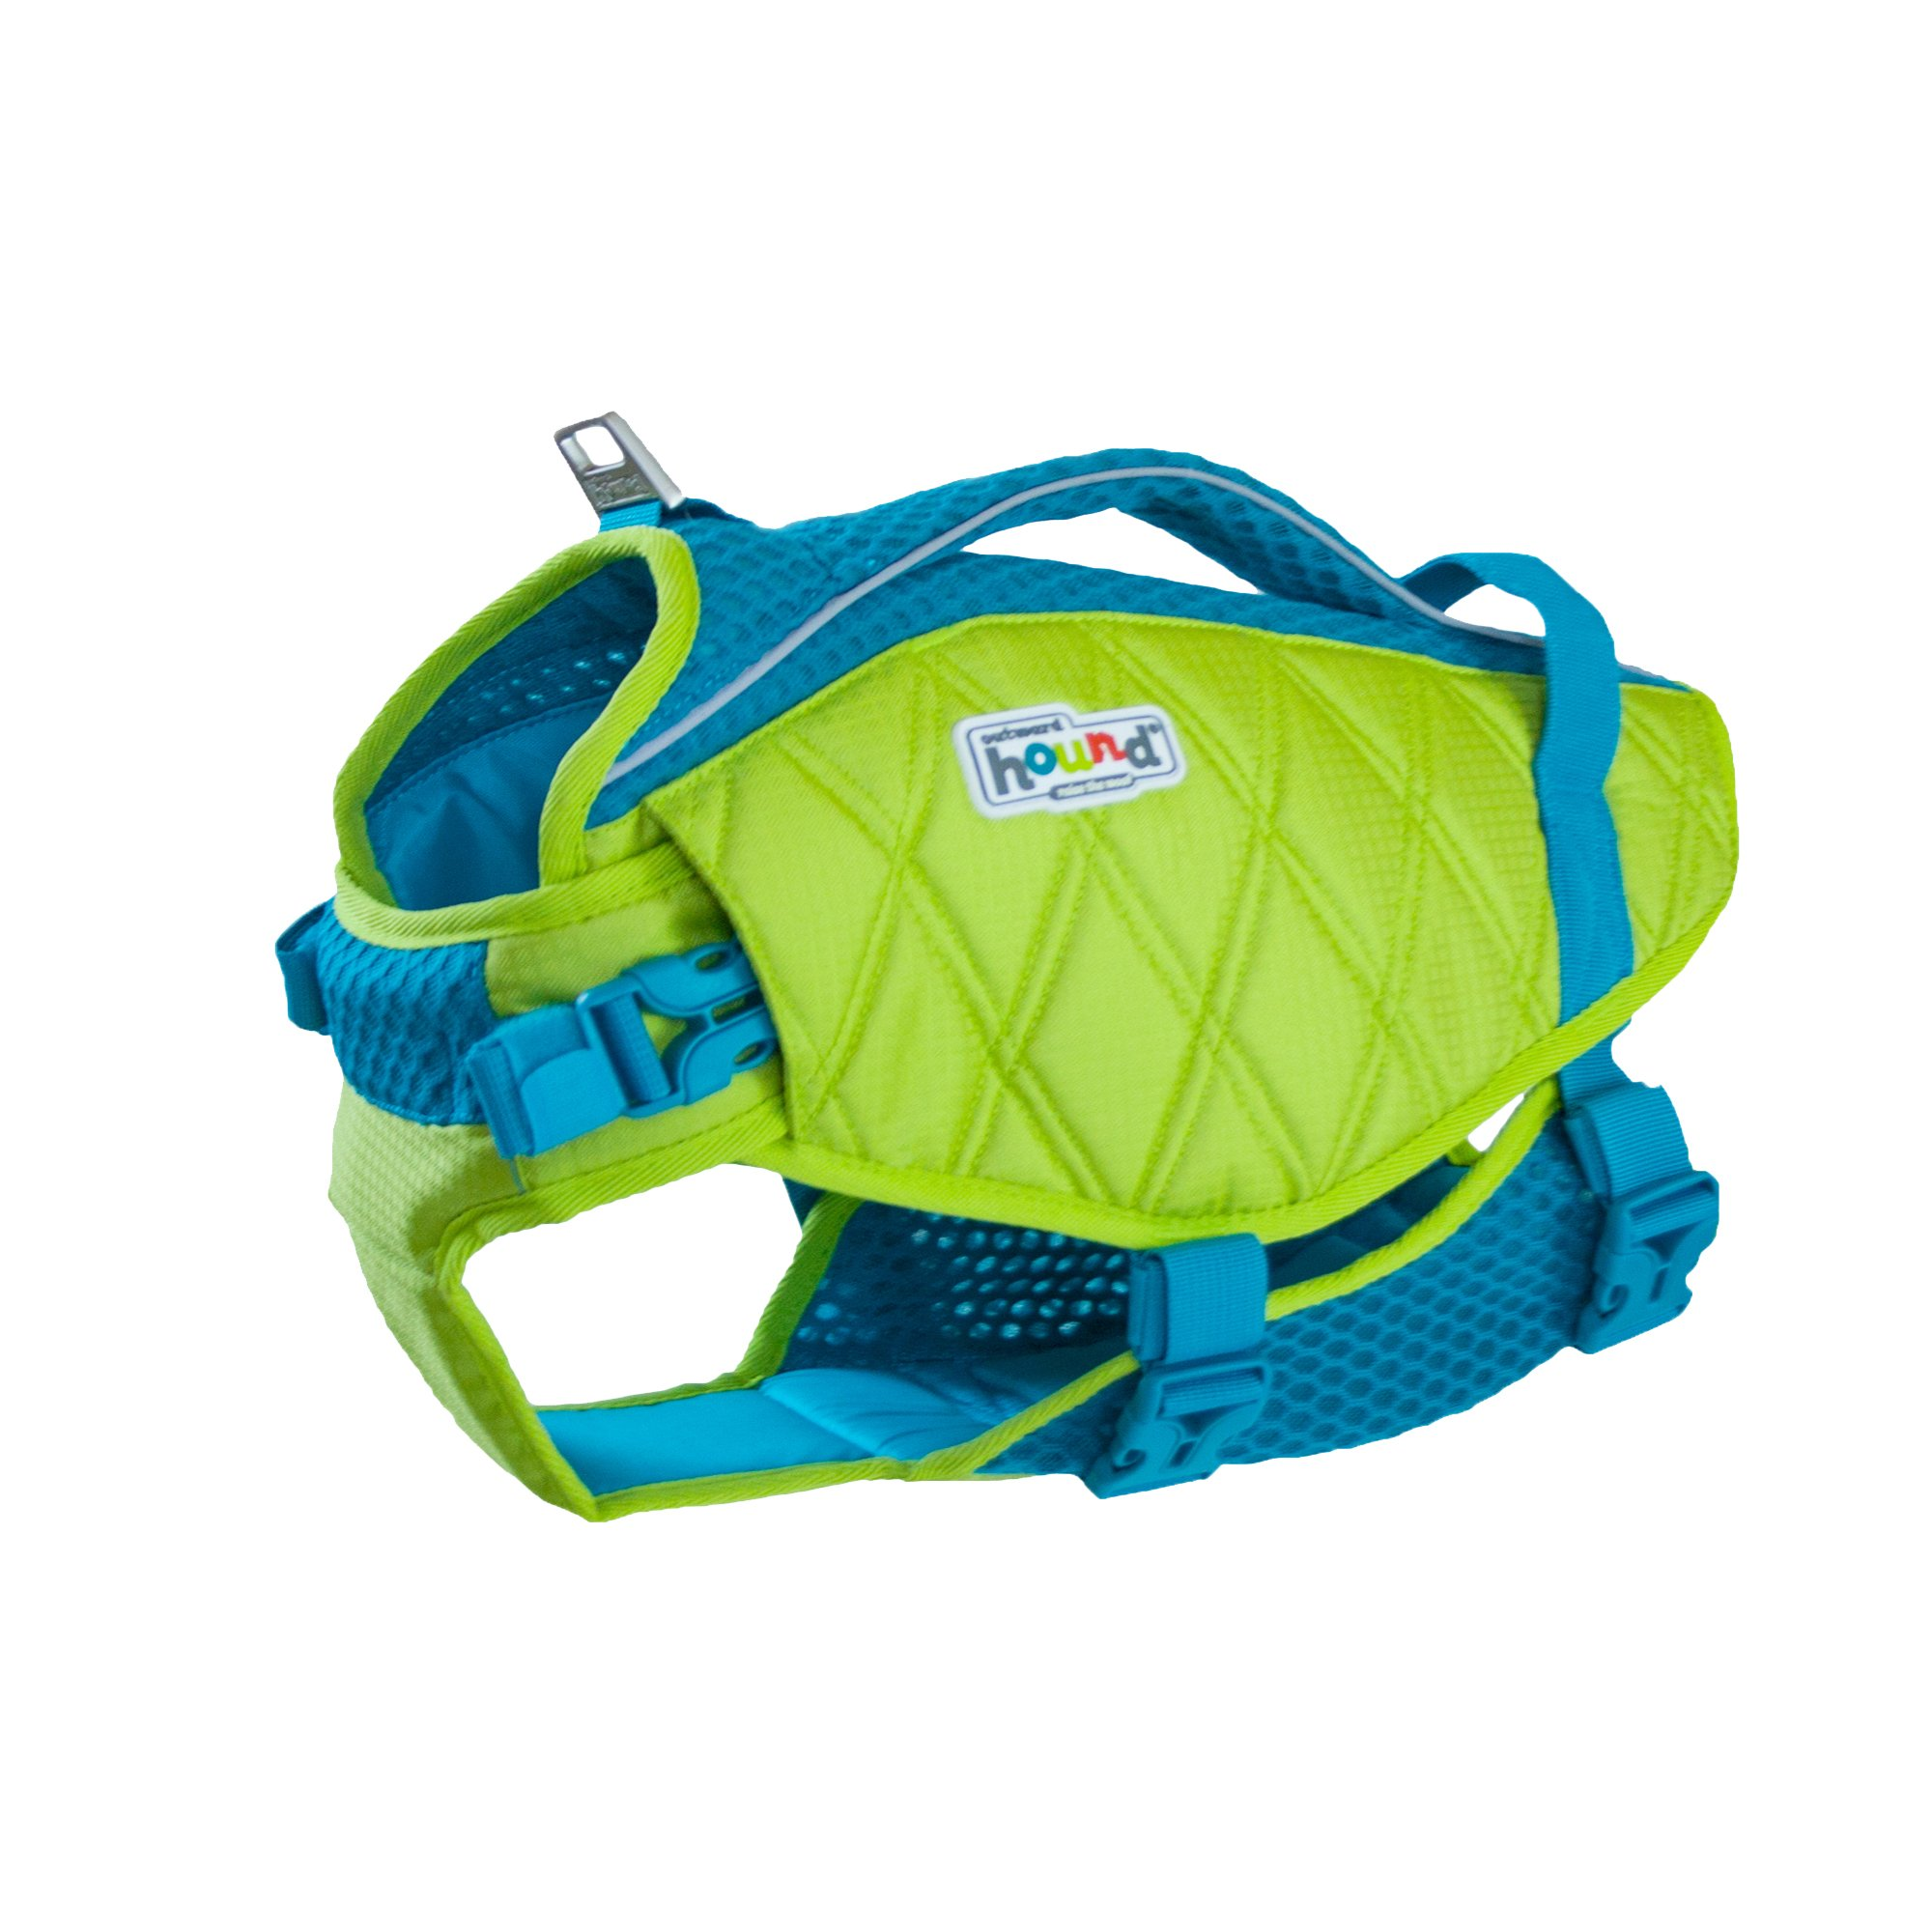 Dog Life Jacket Standley Sport High Performance Life Jacket for Dogs by Outward Hound, X-Large by Outward Hound